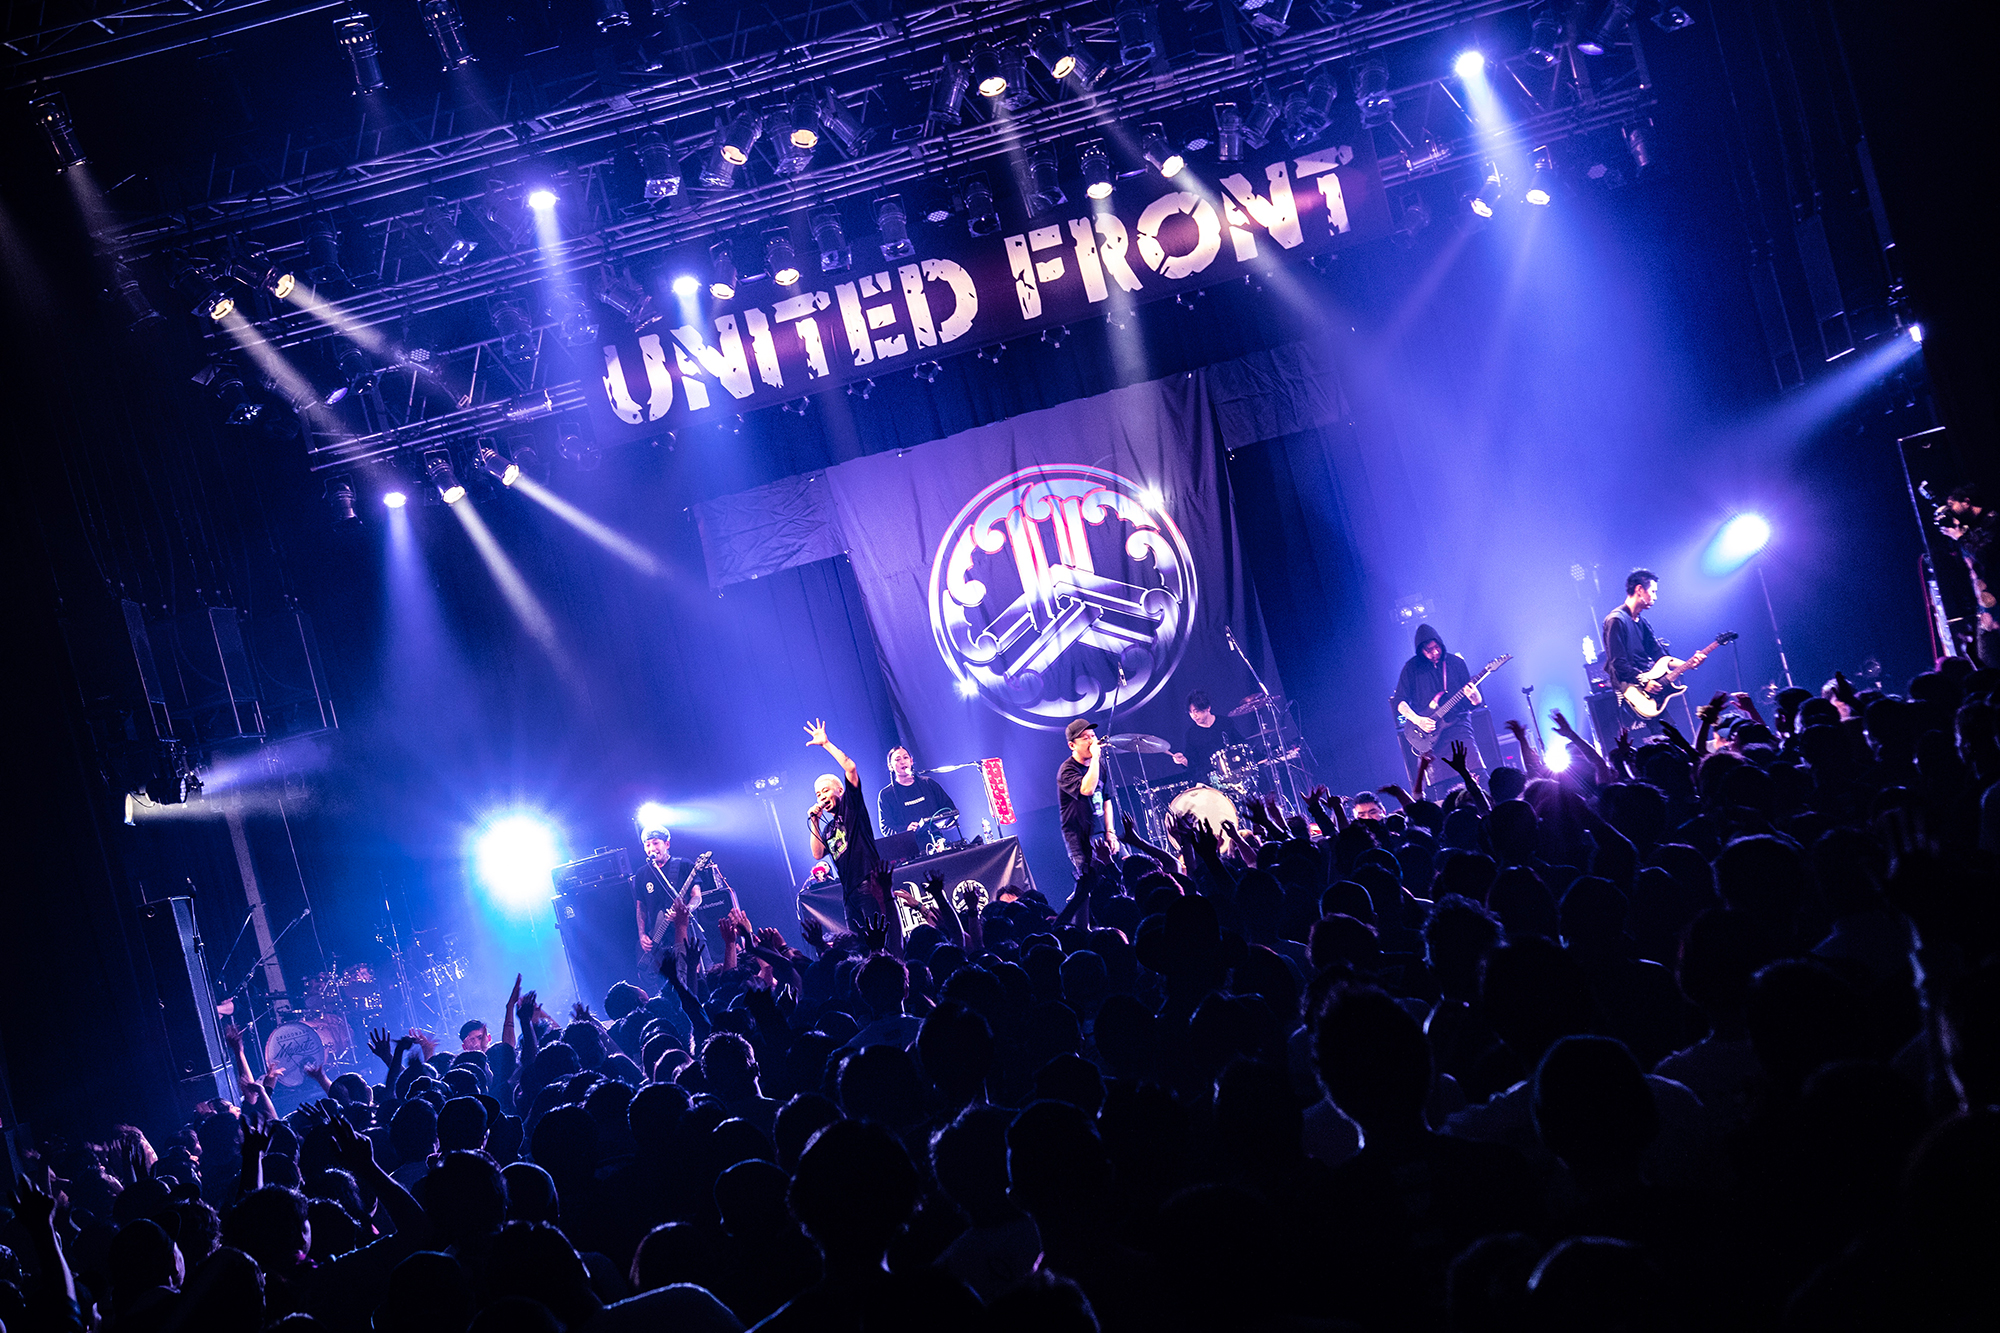 山嵐@Dragon Ash LIVE TOUR 「UNITED FRONT」 photo by TAKAHIRO TAKINAMI